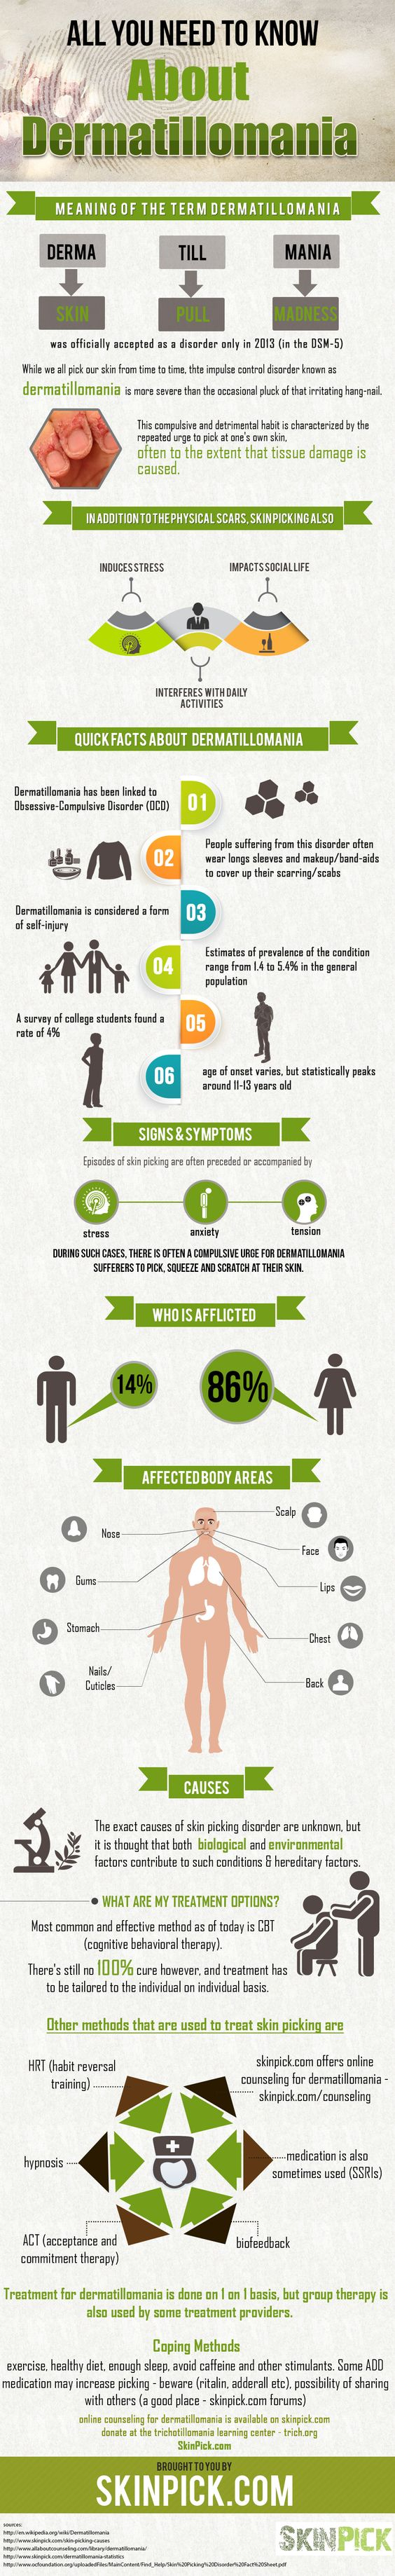 http://www.skinpick.com/node/3587  All You Need to Know about Dermatillomania [INFOGRAPH]